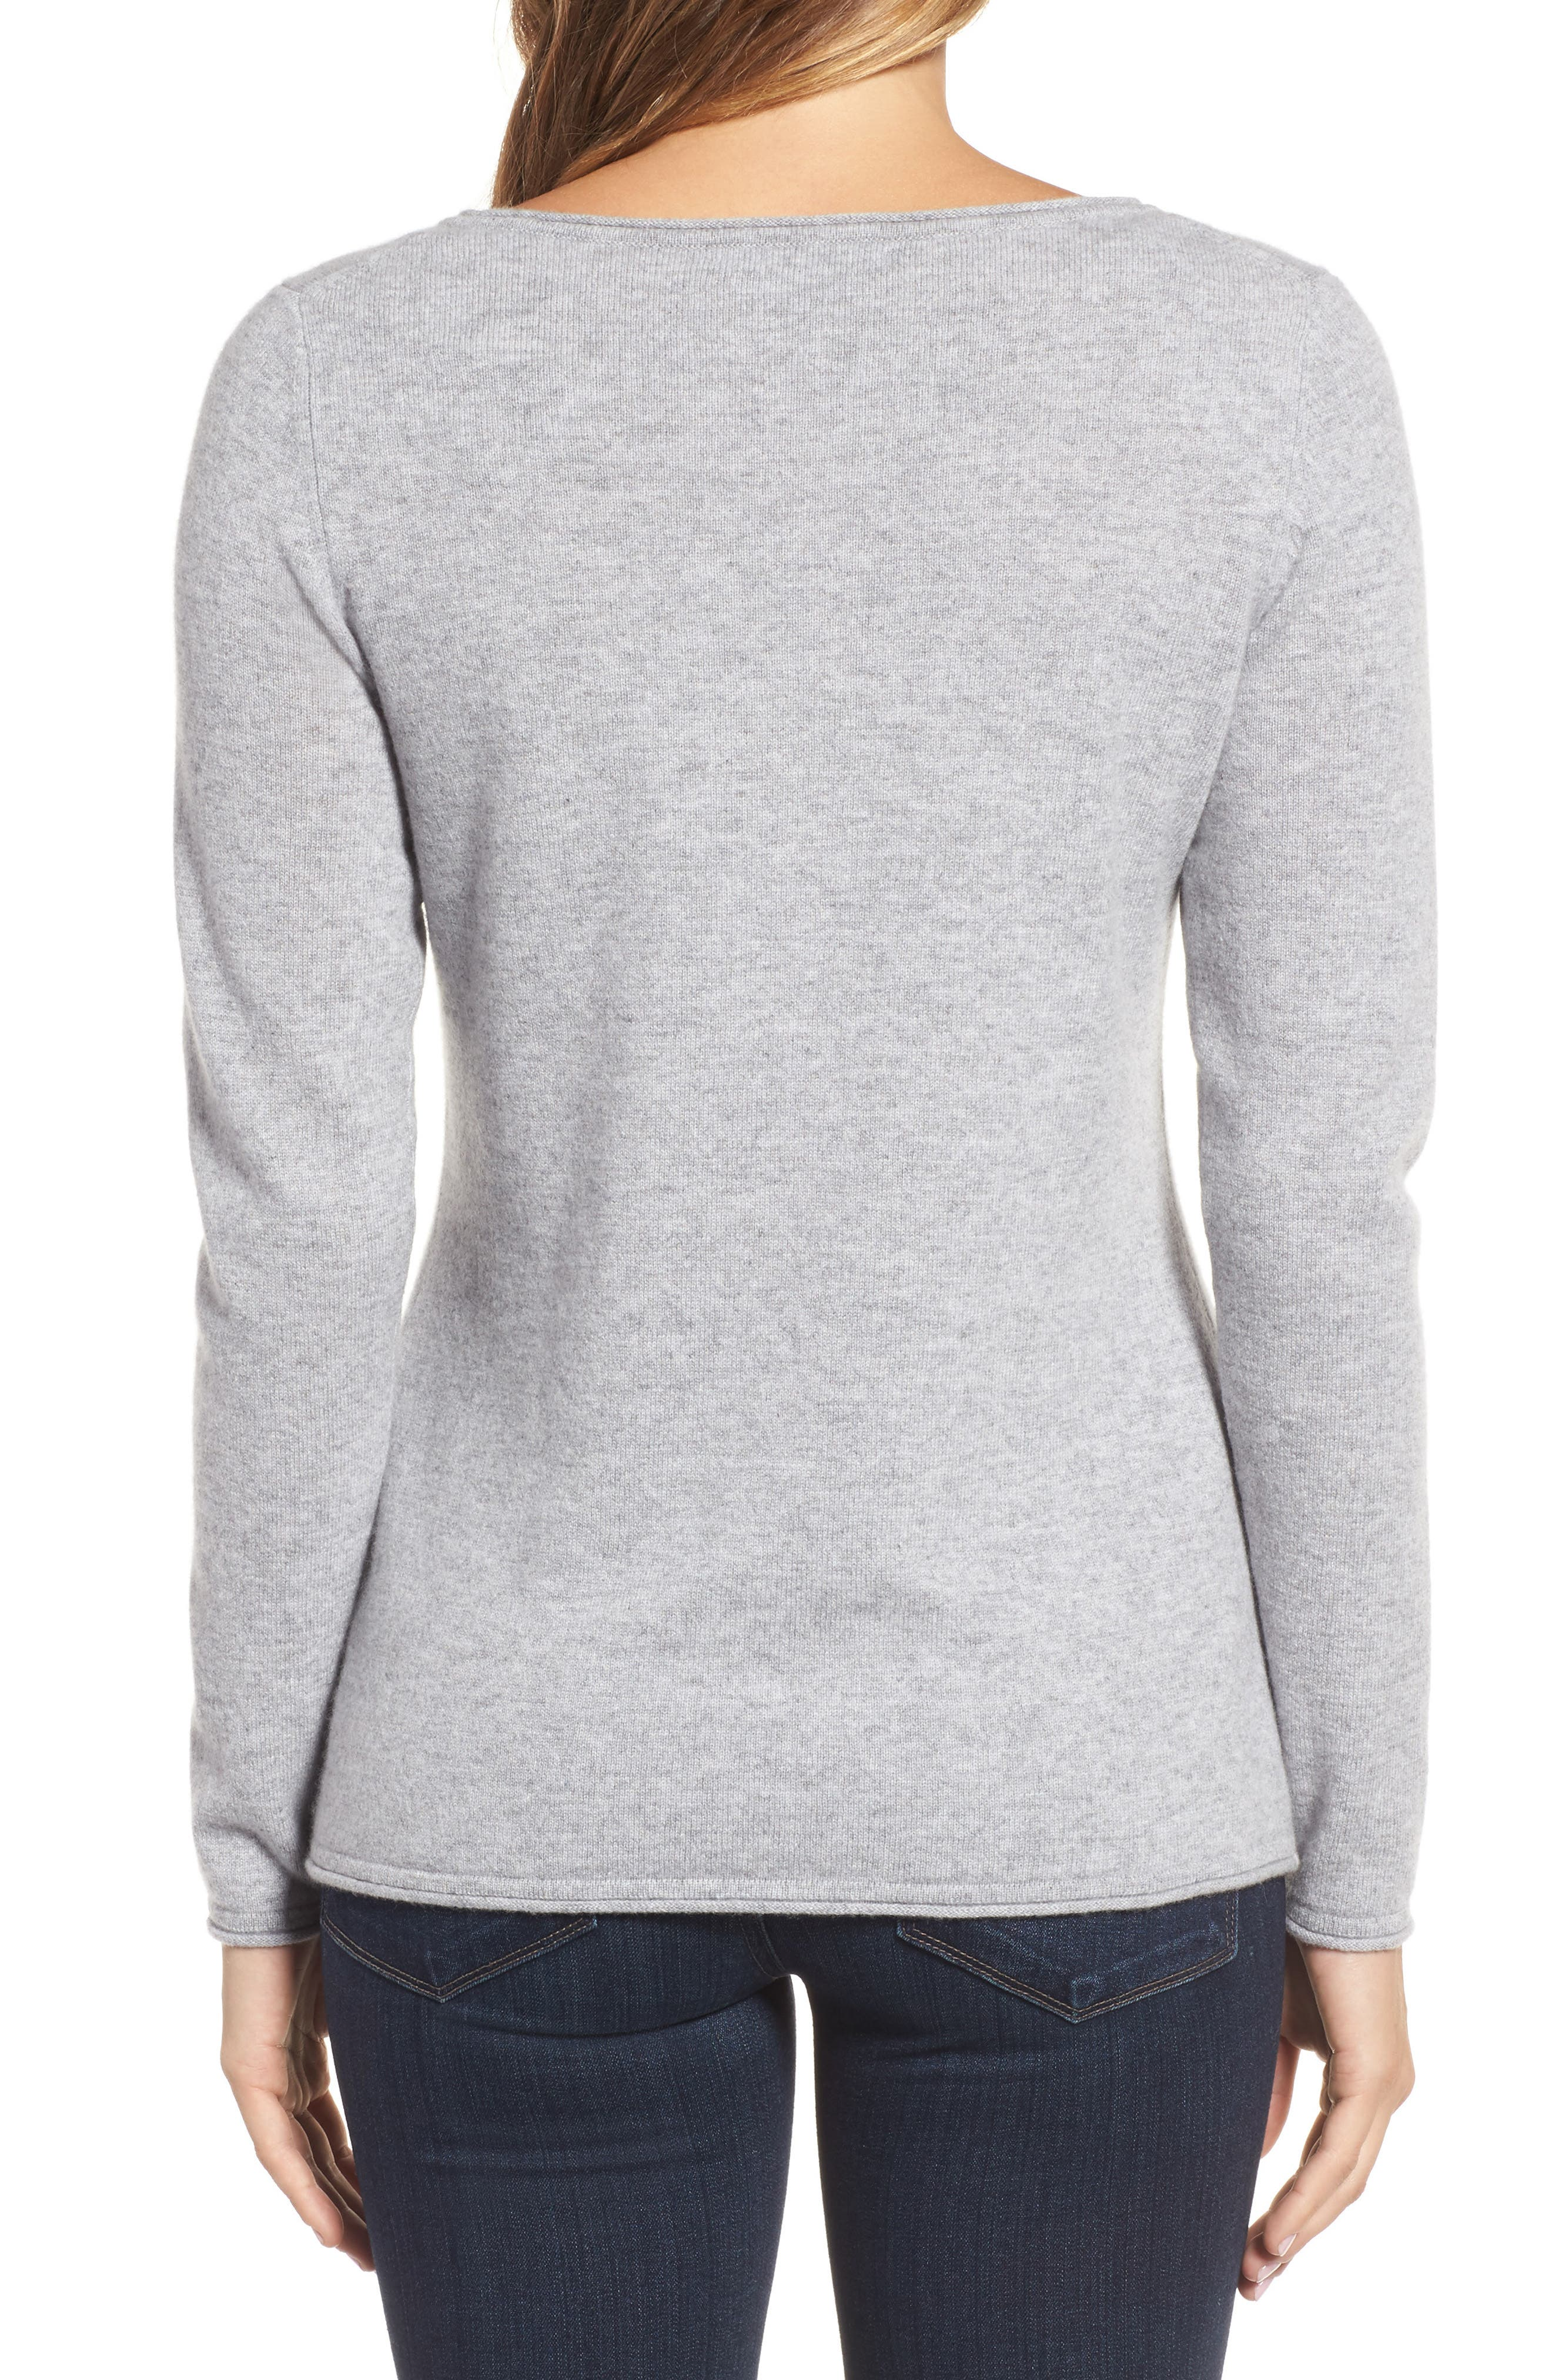 Island Palm Intarsia Cashmere Pullover,                             Alternate thumbnail 2, color,                             Light Grey Heather